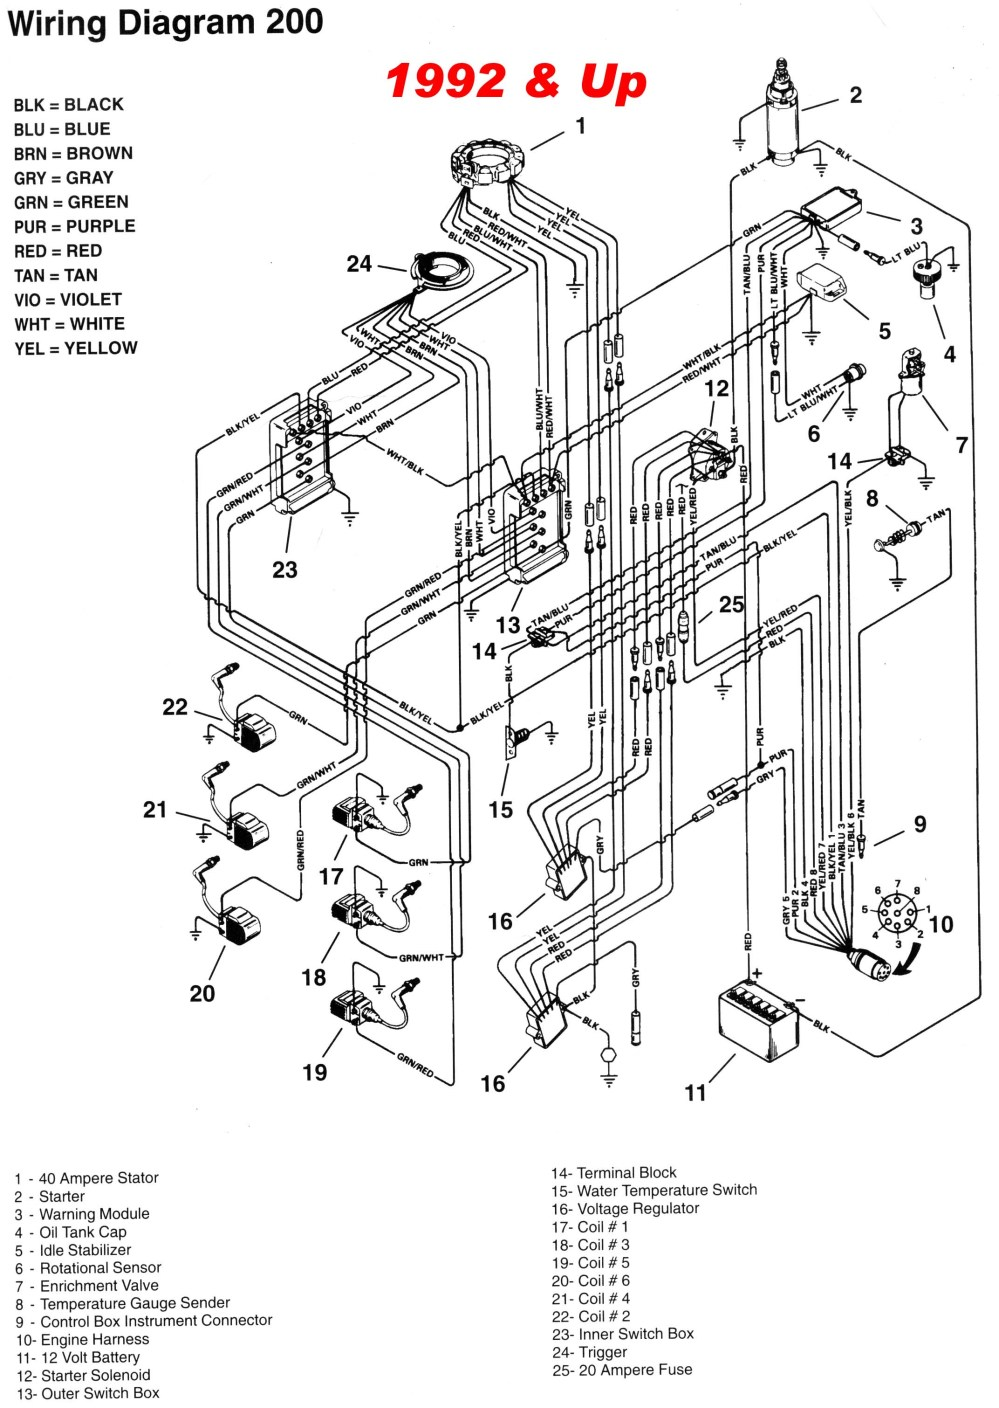 medium resolution of 200 hp mercury outboard wiring diagram free download wiring mix 90 mercury outboard wiring diagram free